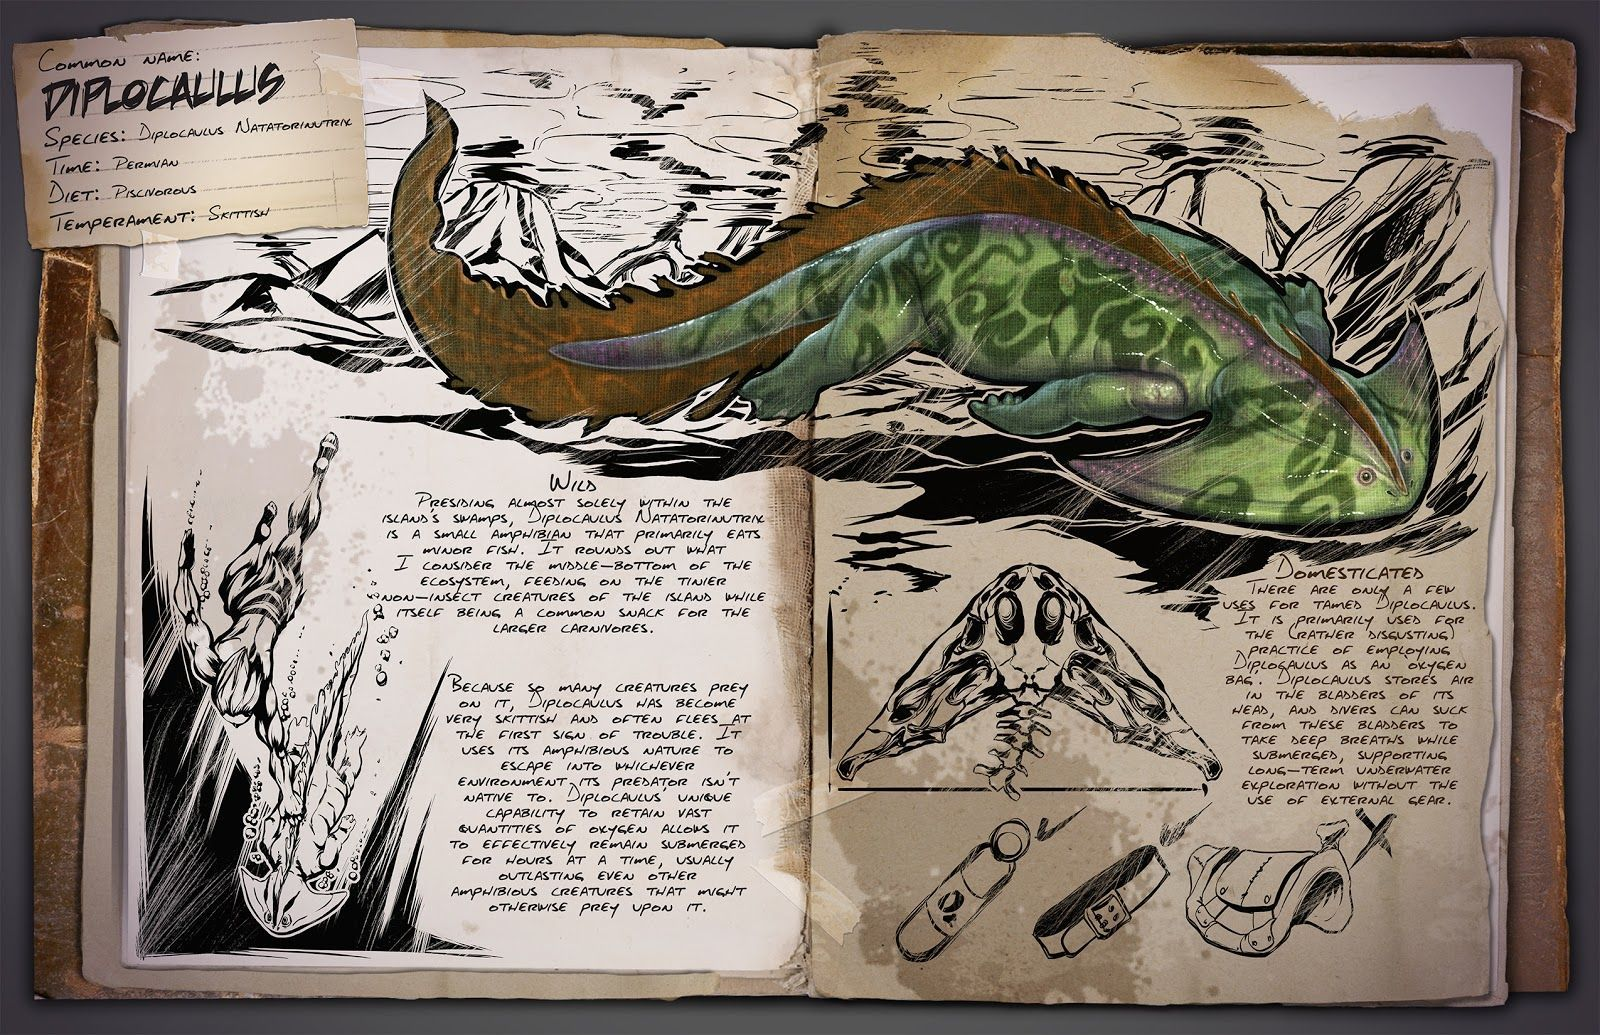 ARK: Survival Evolved on Xbox One expands with new update